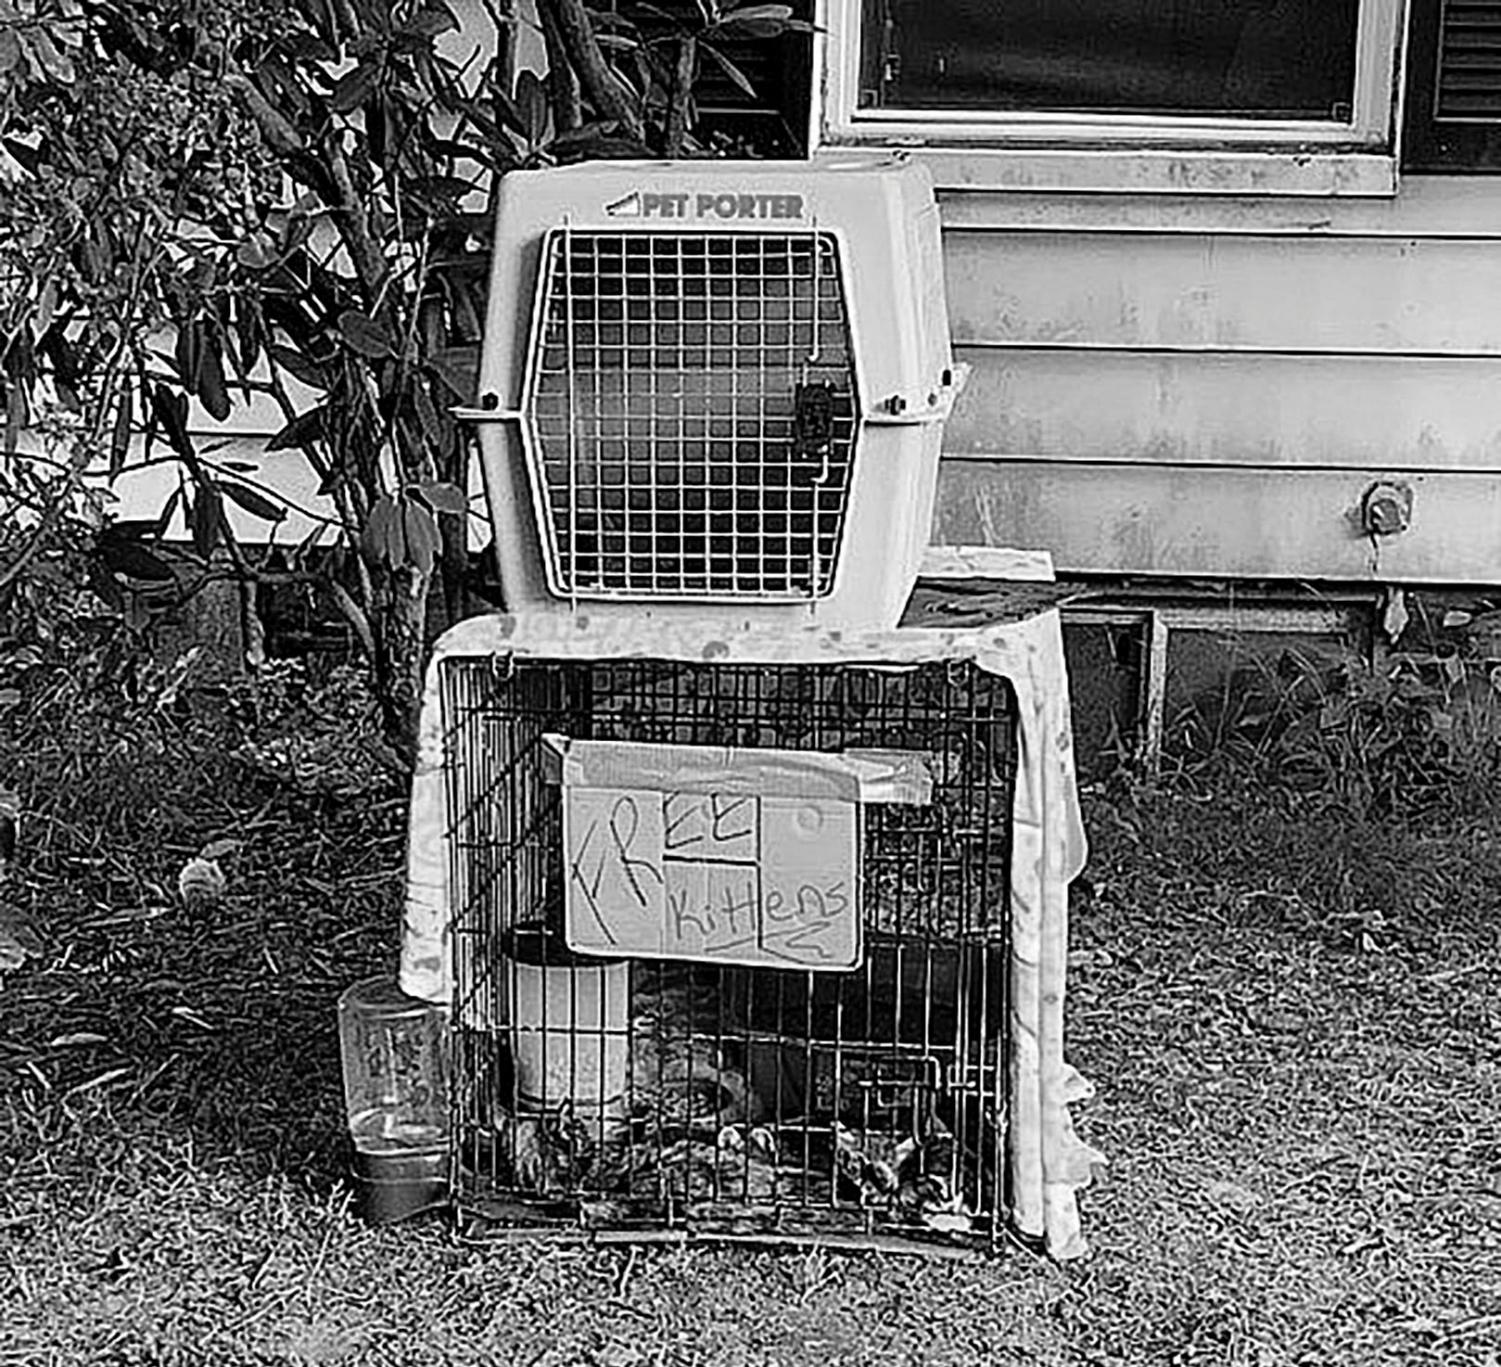 Students found a group of young kittens in this crate on Main Street this past weekend.